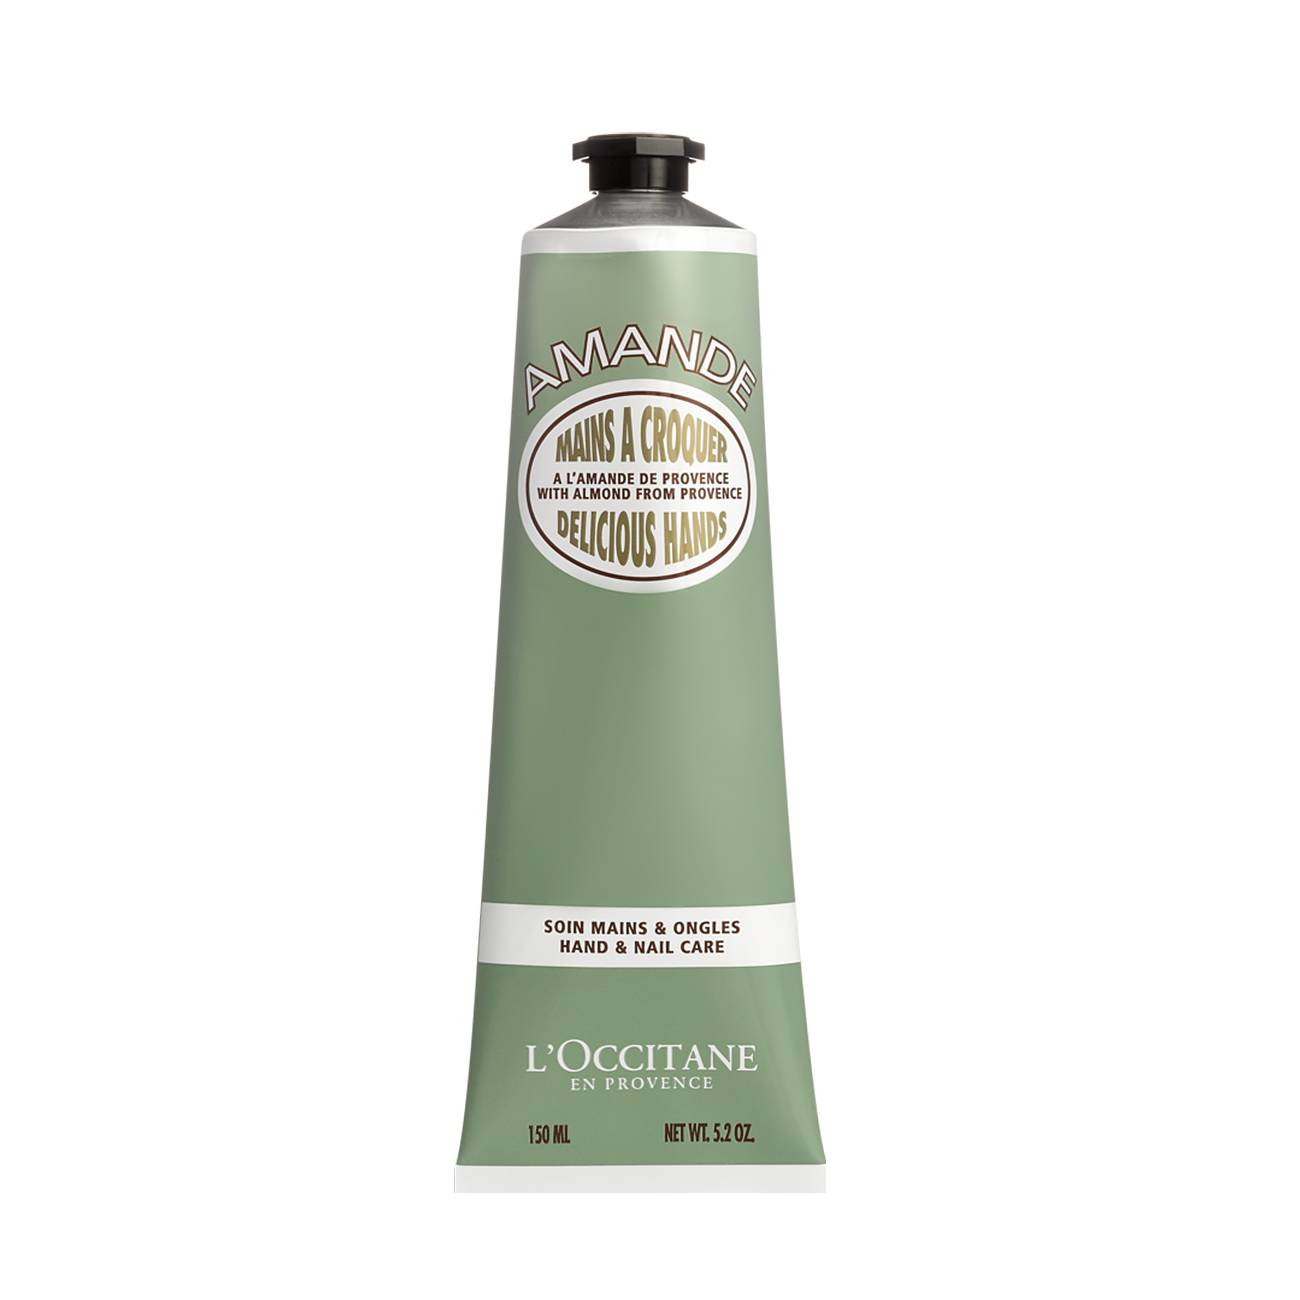 Almond Delicious Hands Cream 150ml